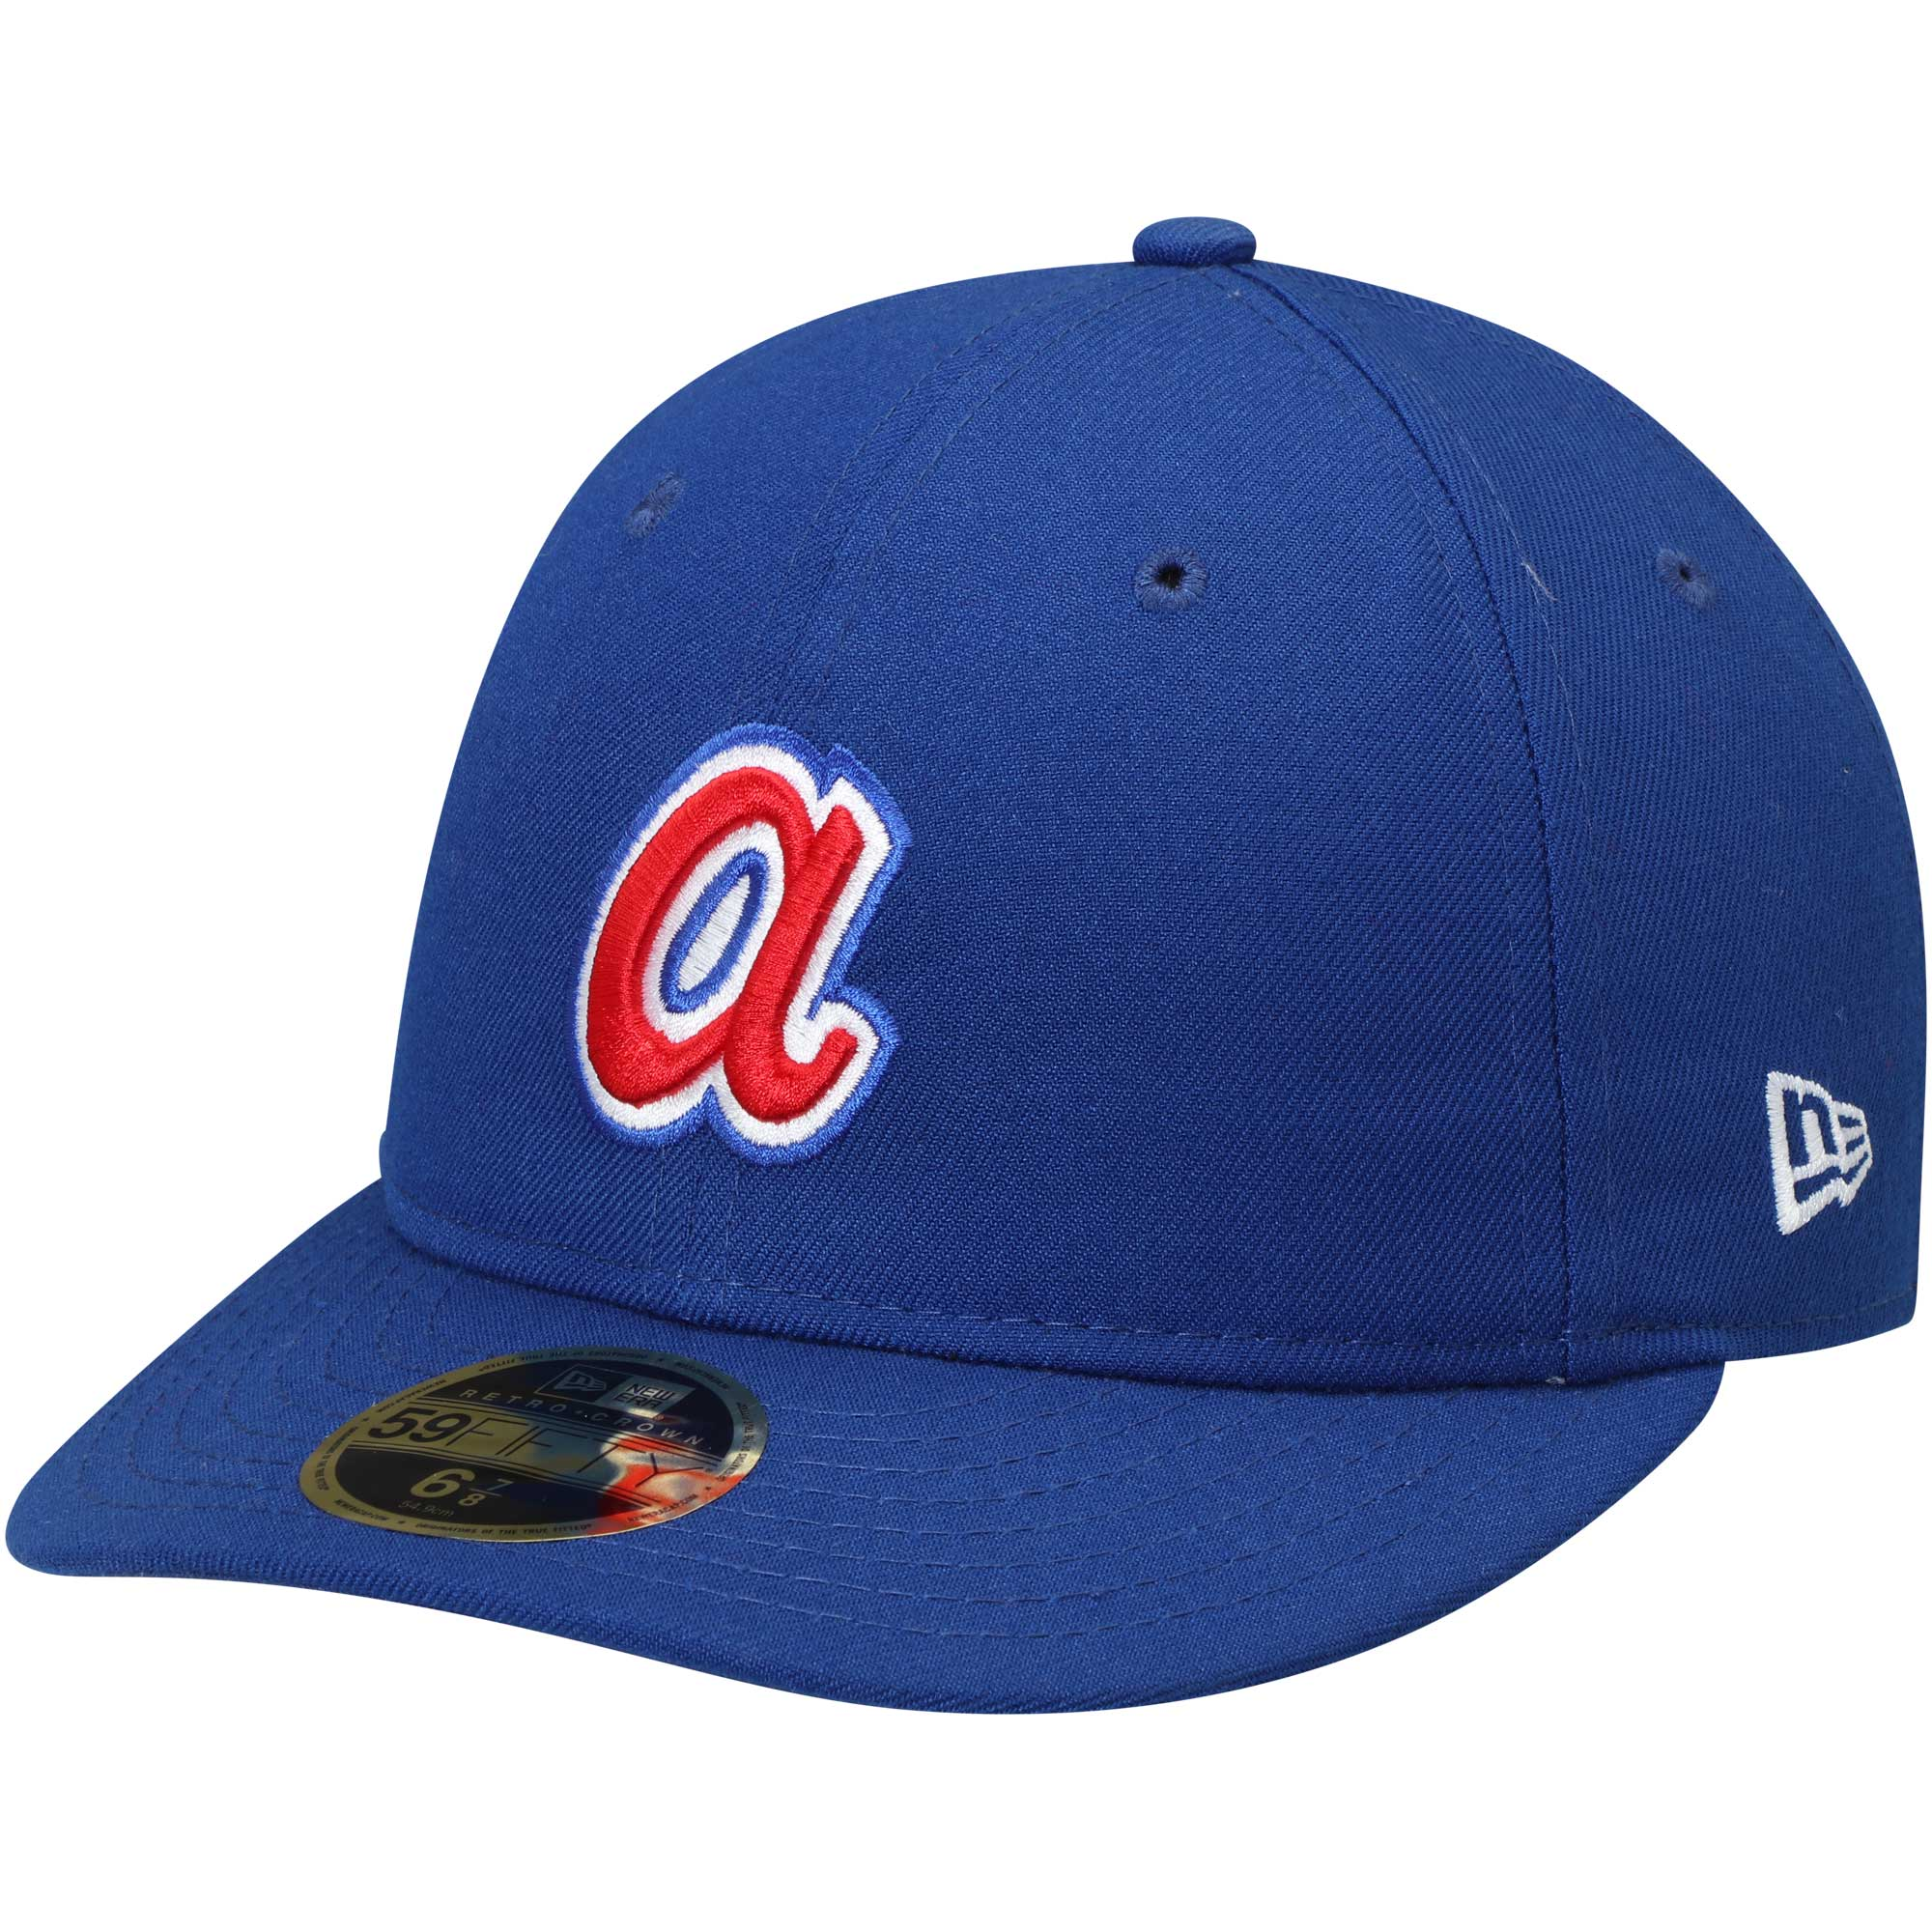 Atlanta Braves New Era Cooperstown Collection Fan Retro 59FIFTY Fitted Hat - Royal